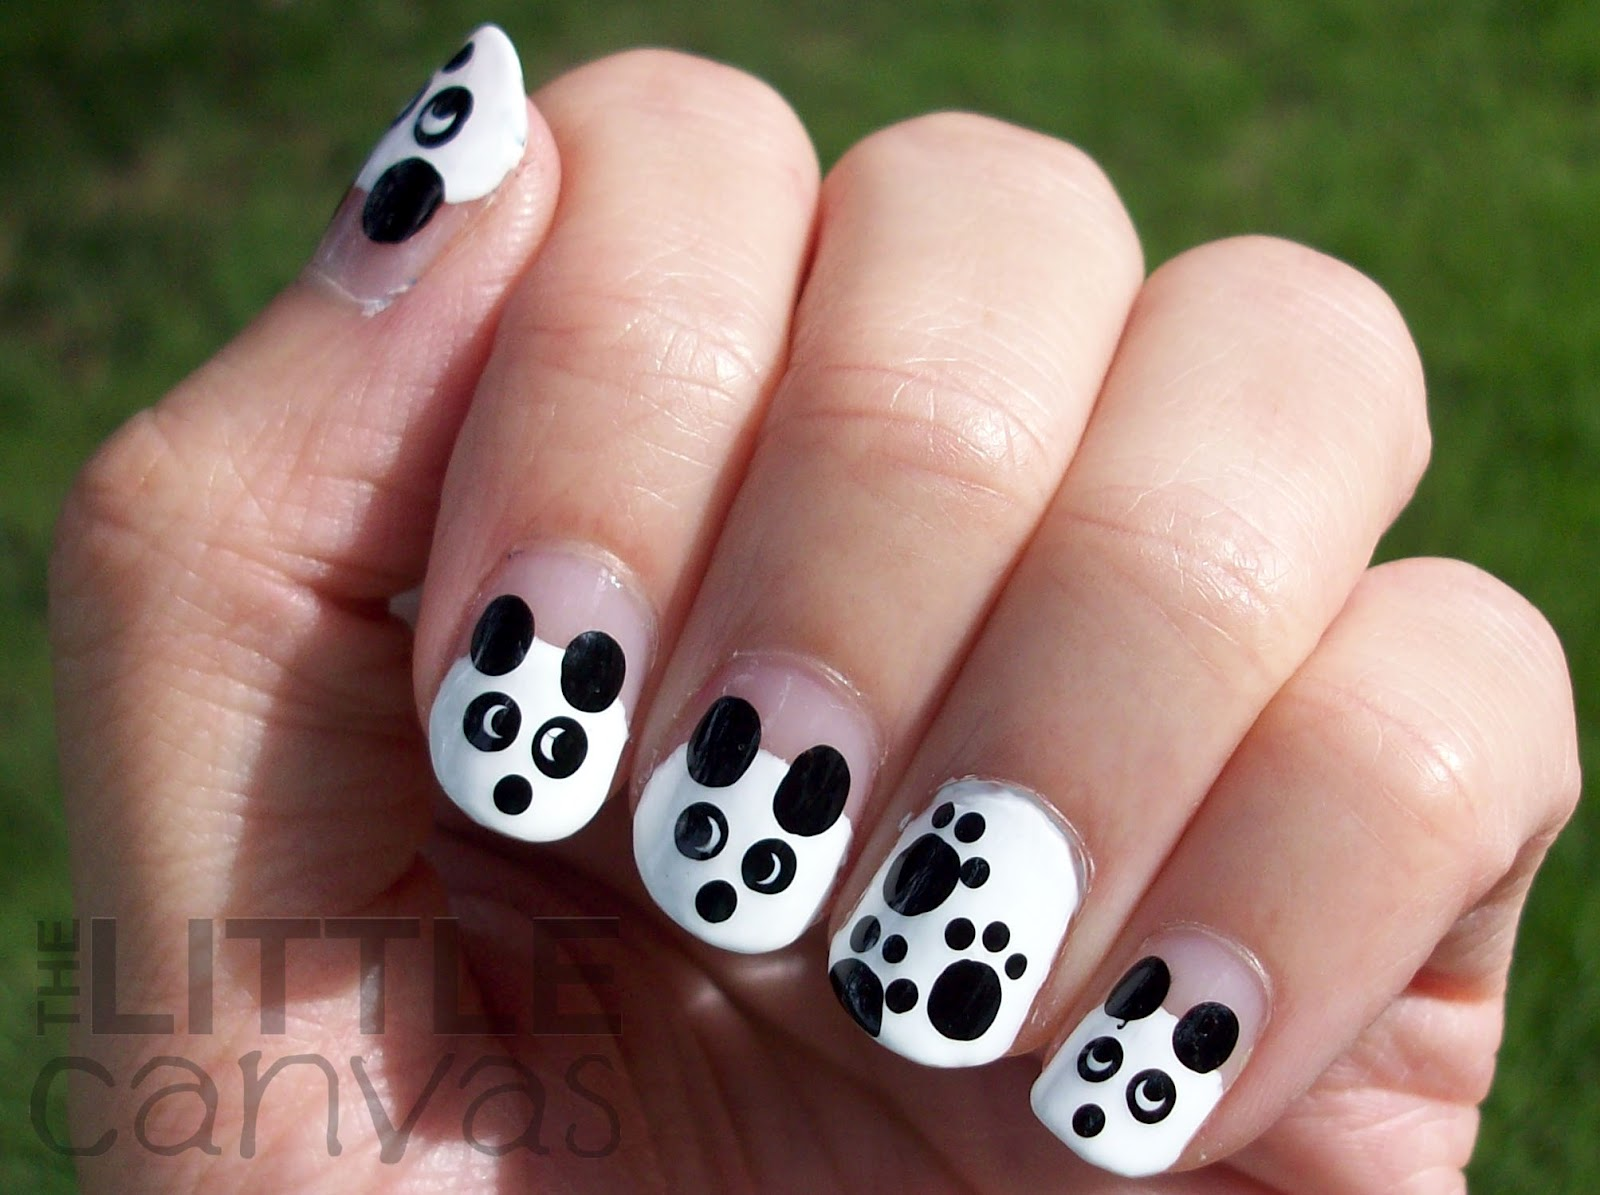 Panda nail art image collections nail art and nail design ideas 31 day challenge day 8 black and white pandas the little 31 day challenge day 8 prinsesfo Images